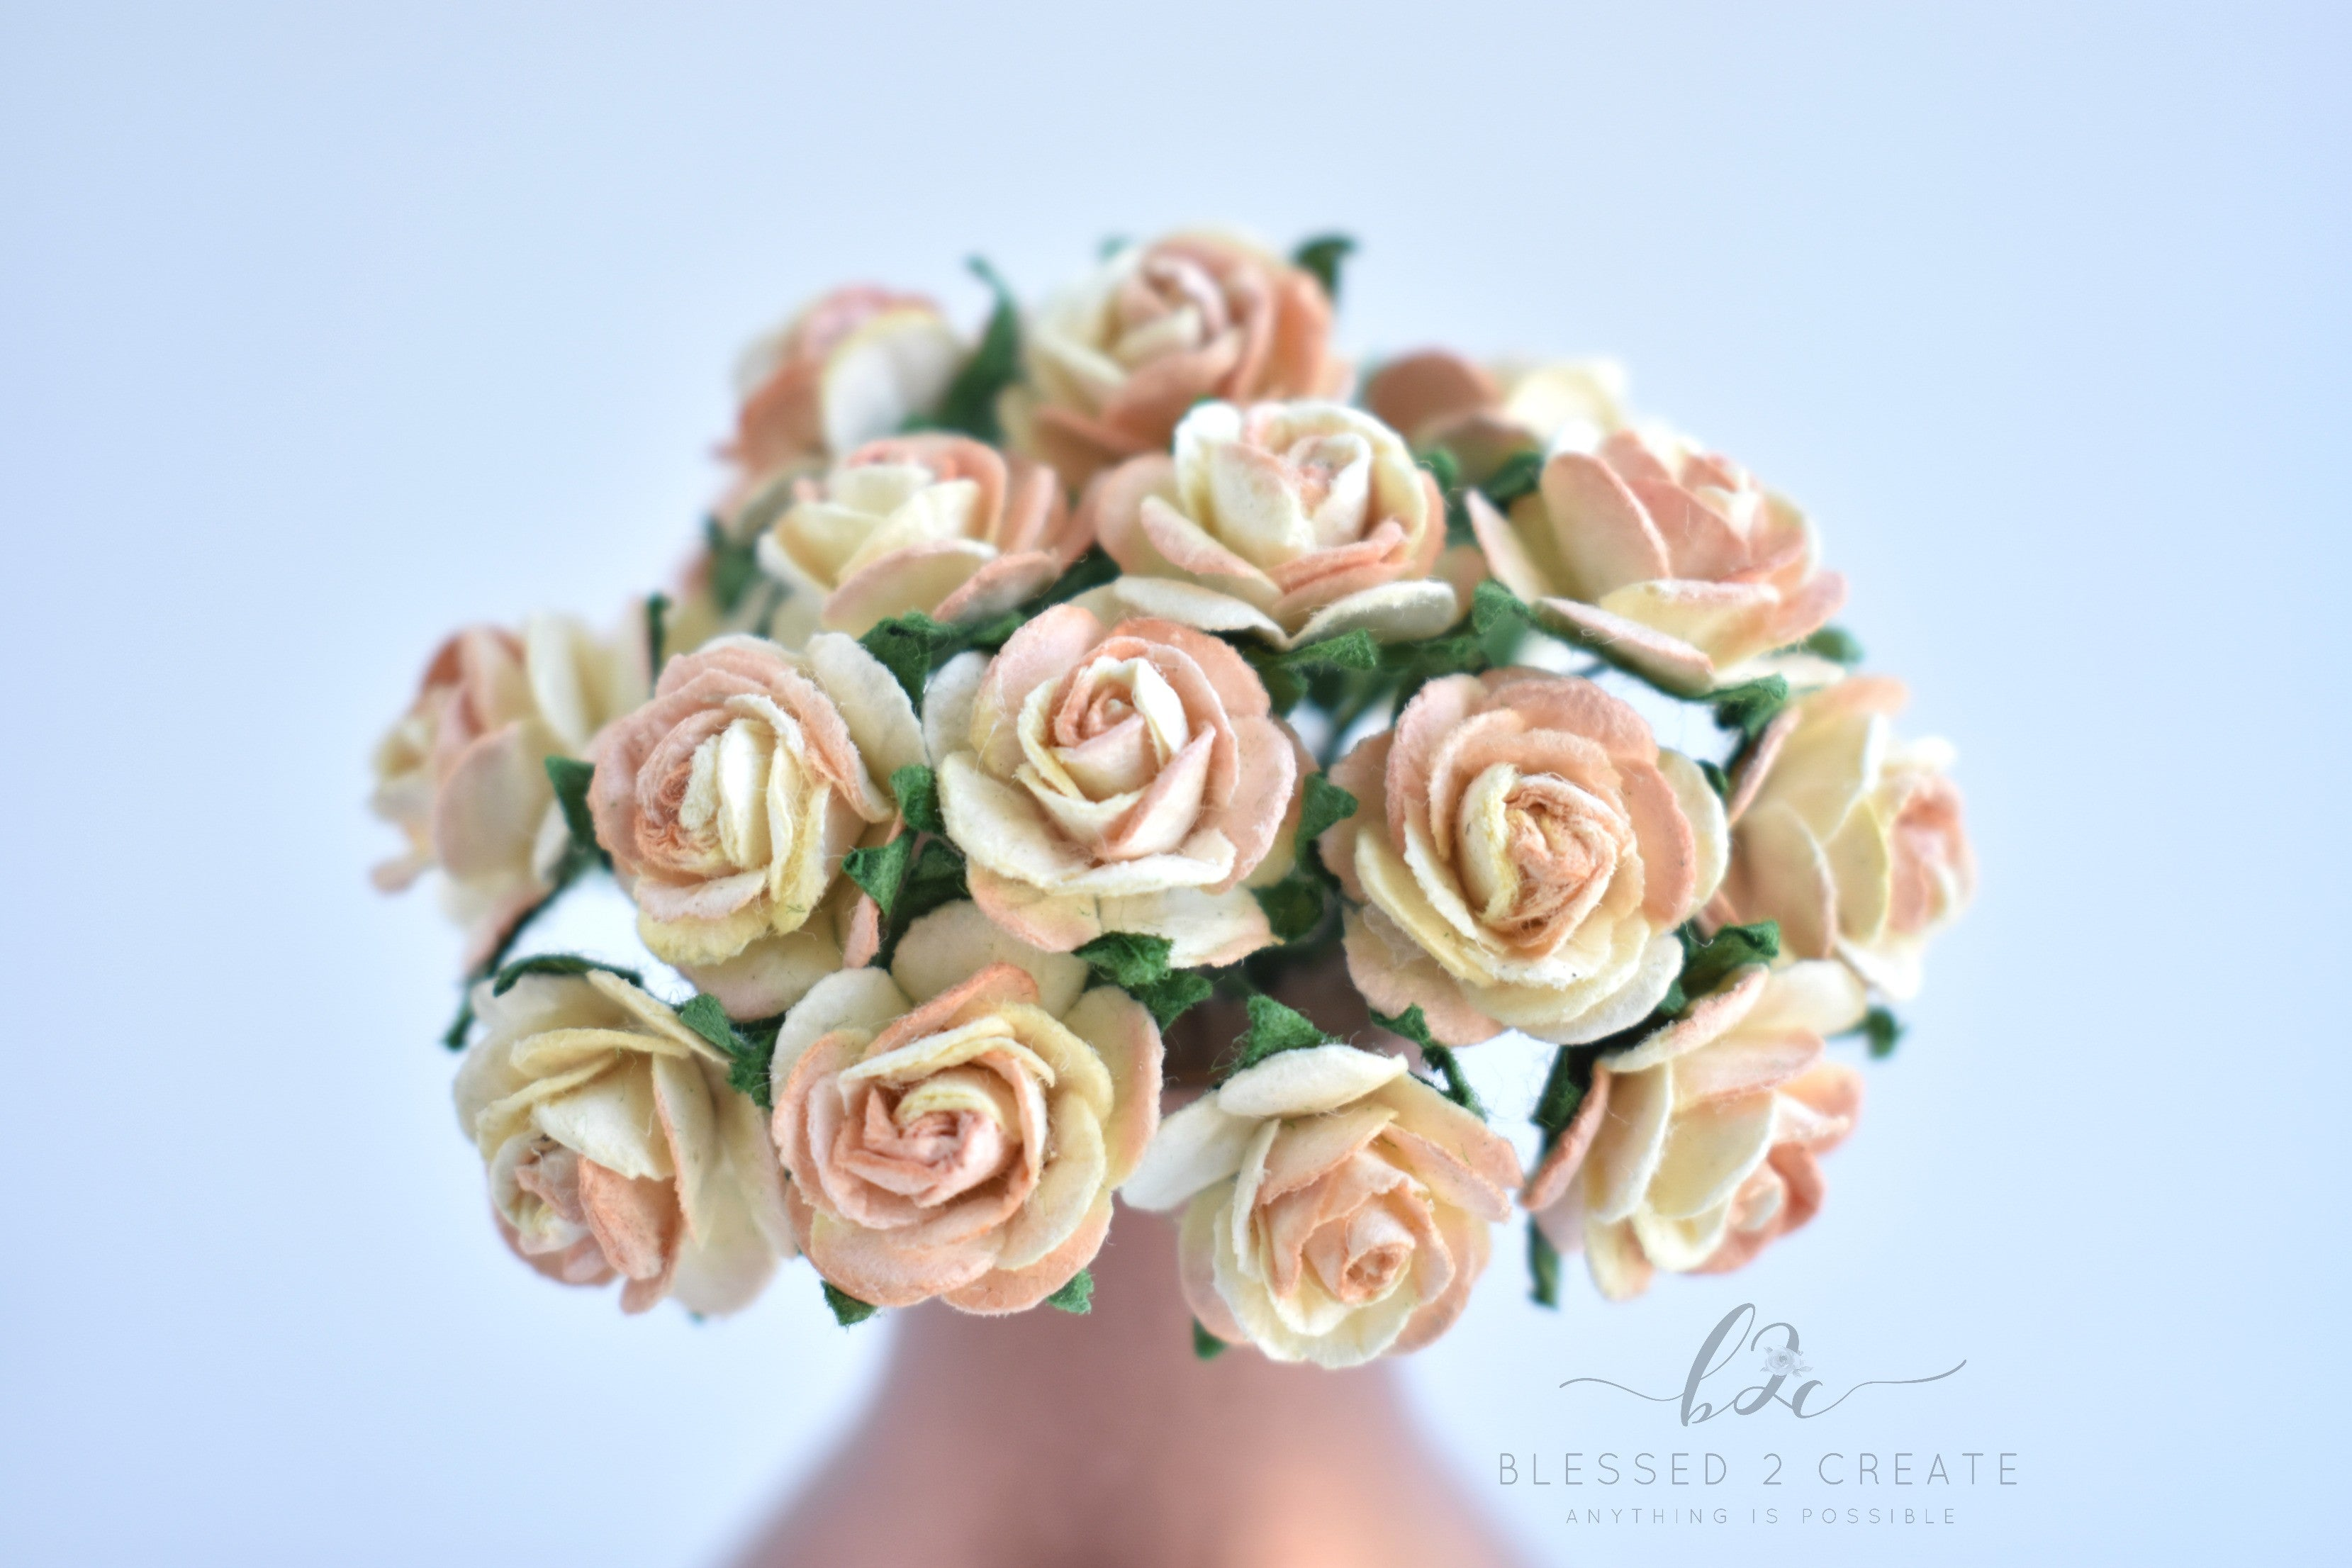 10 15mm Peach And Cream Mulberry Paper Flowers Sprinkledwithfunfetti